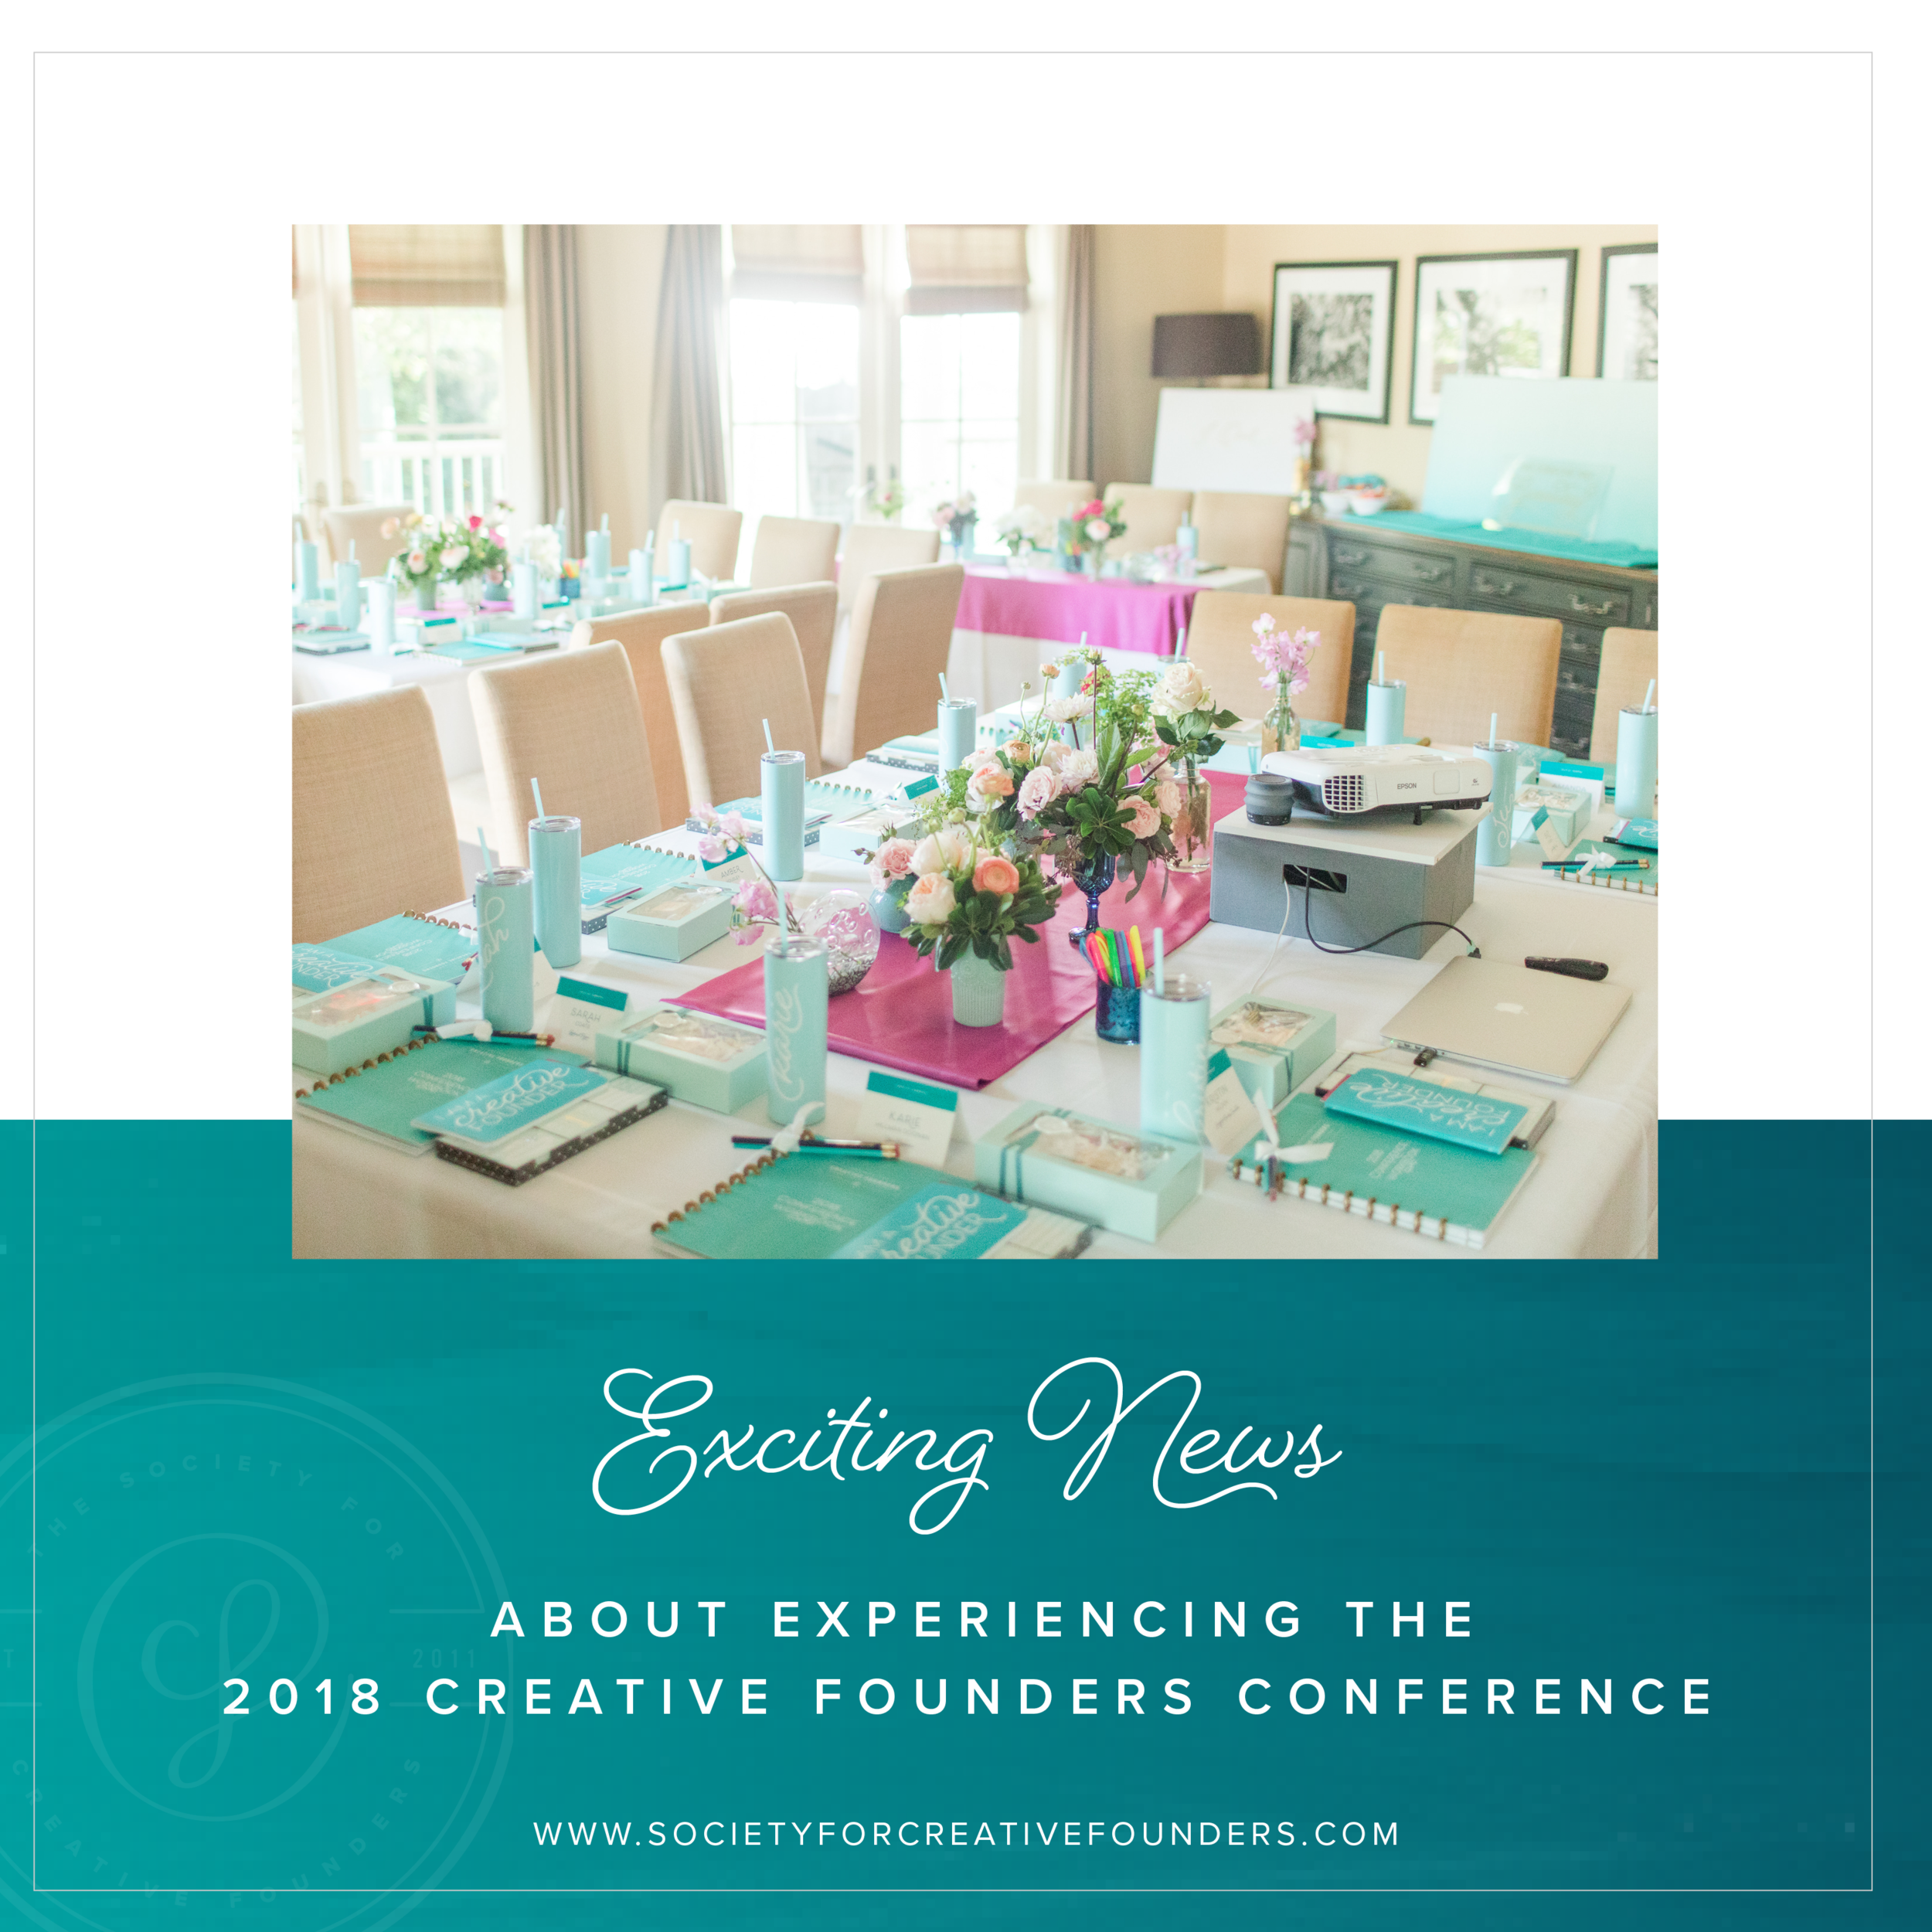 Creative Founders Conference - Exciting News about our 2018 Experience